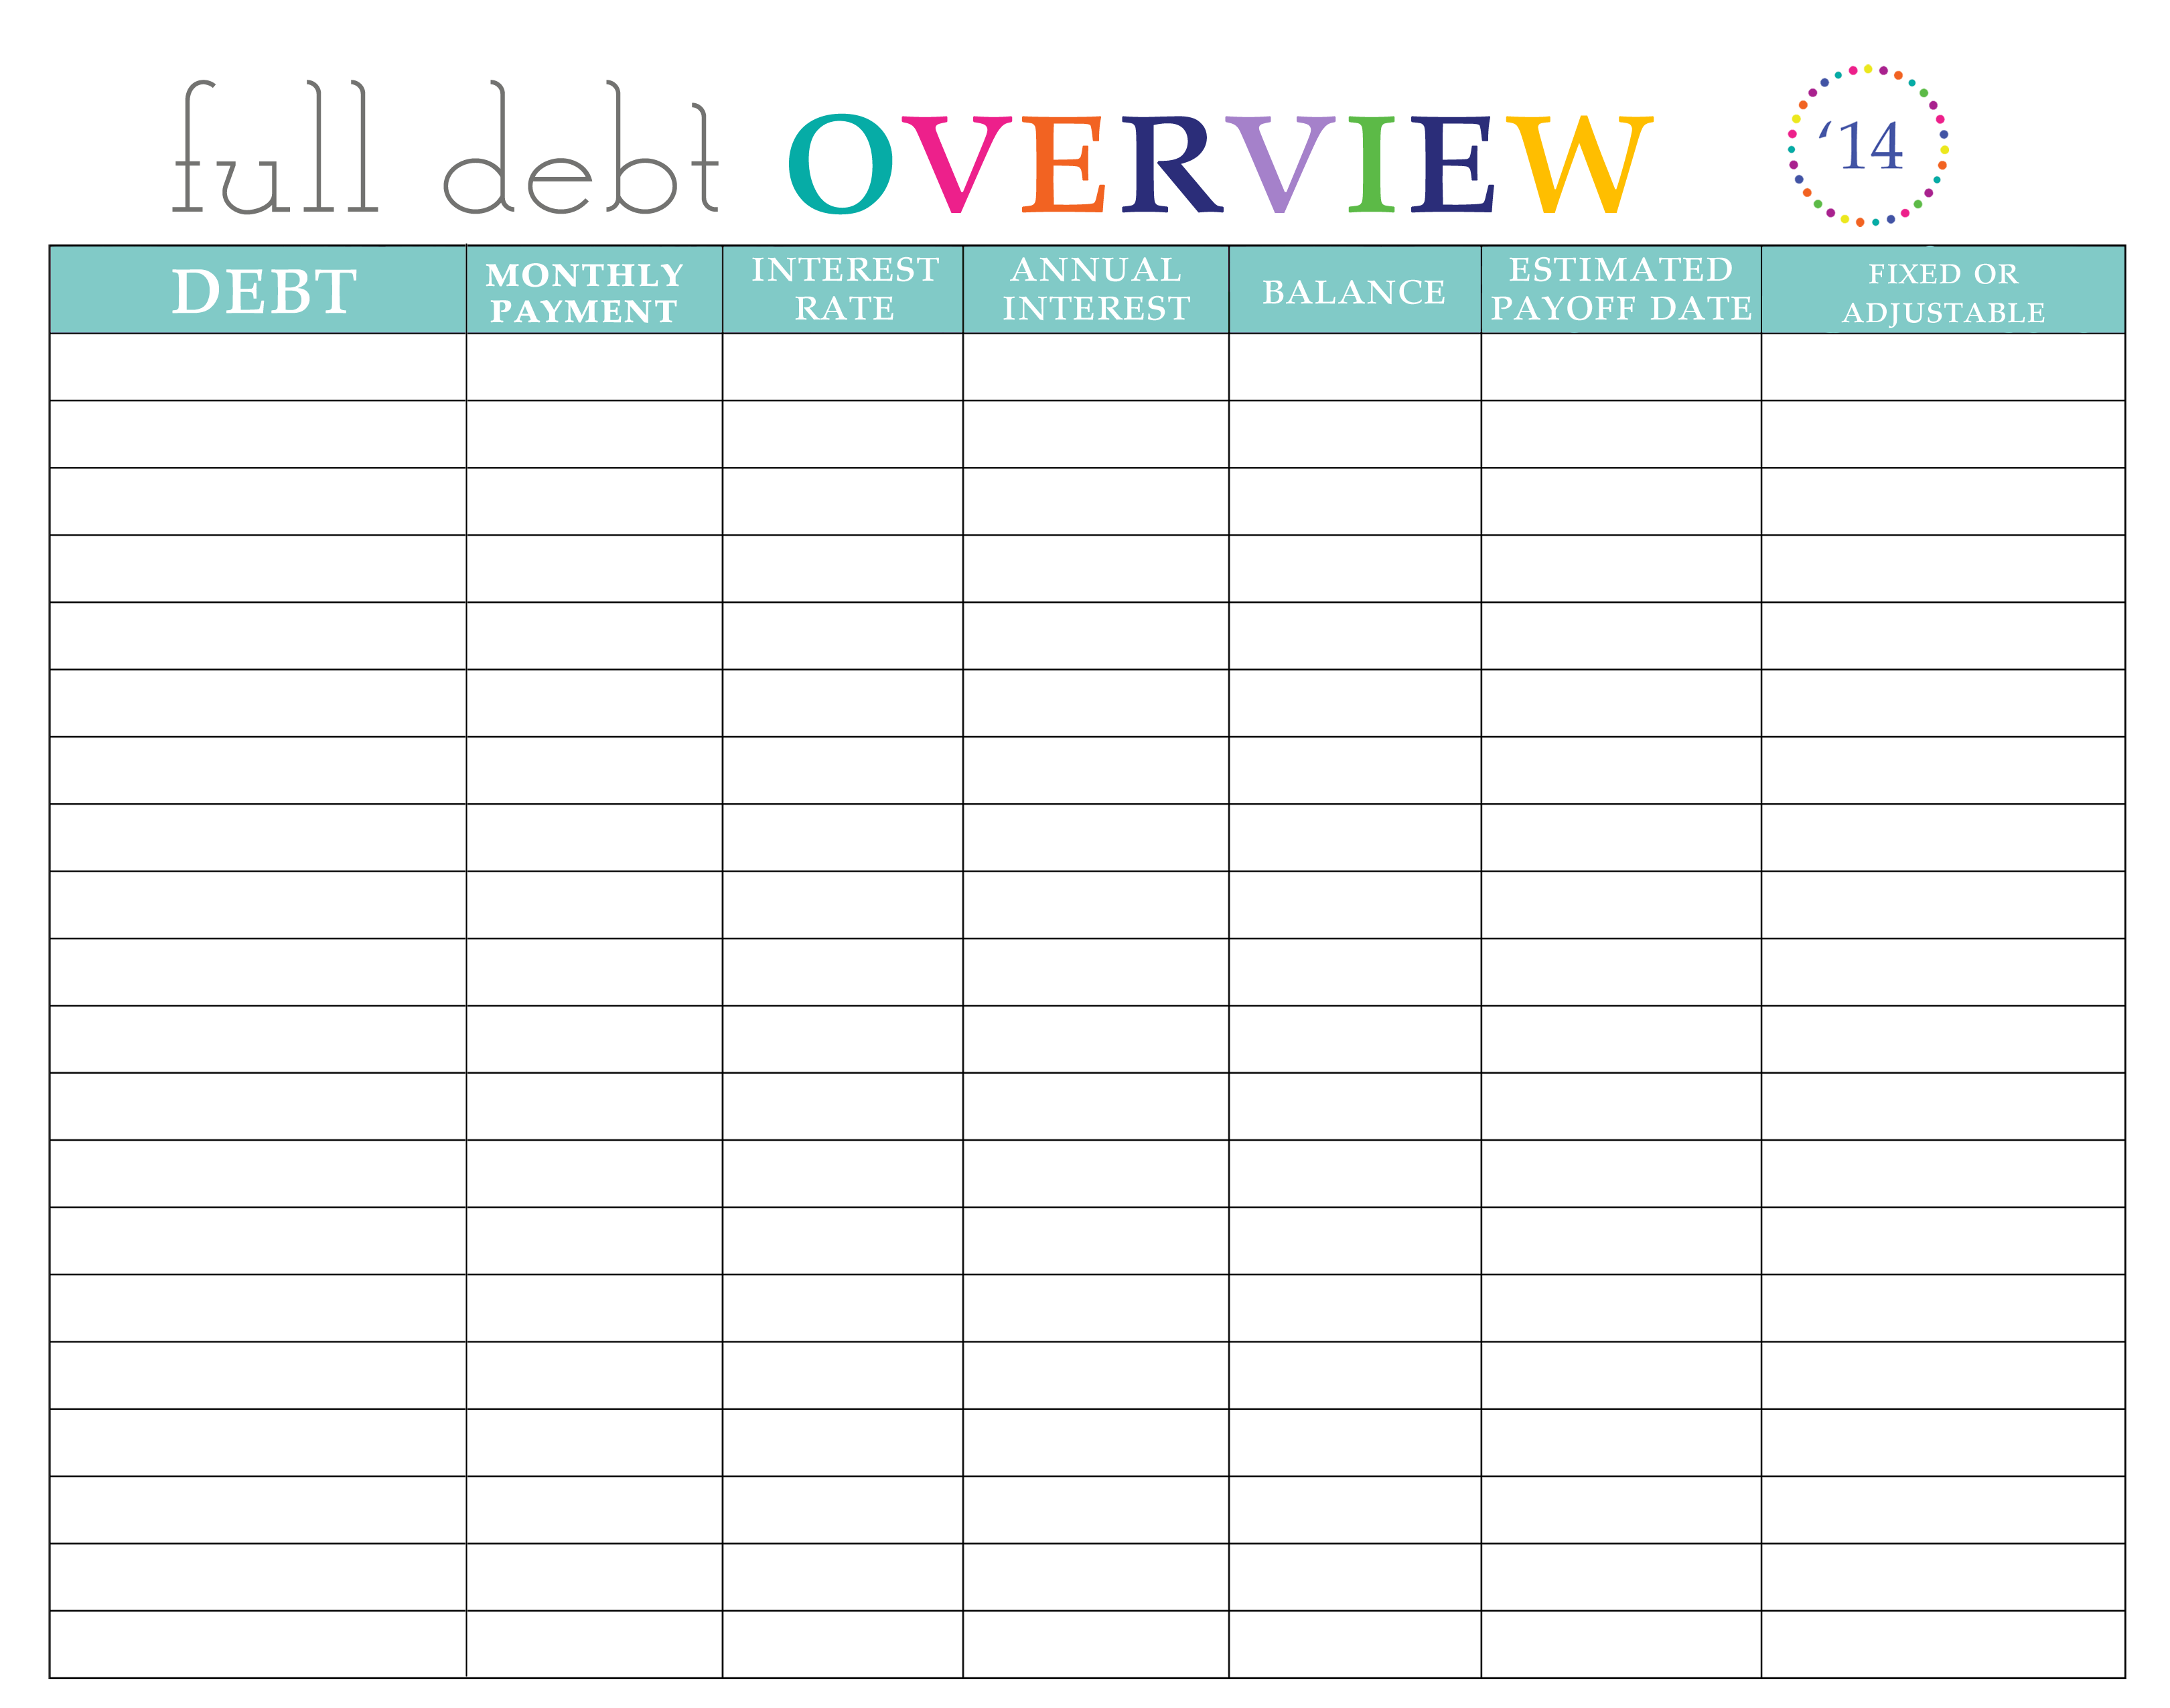 Worksheets Car Loan Worksheet paying off debt worksheets debt